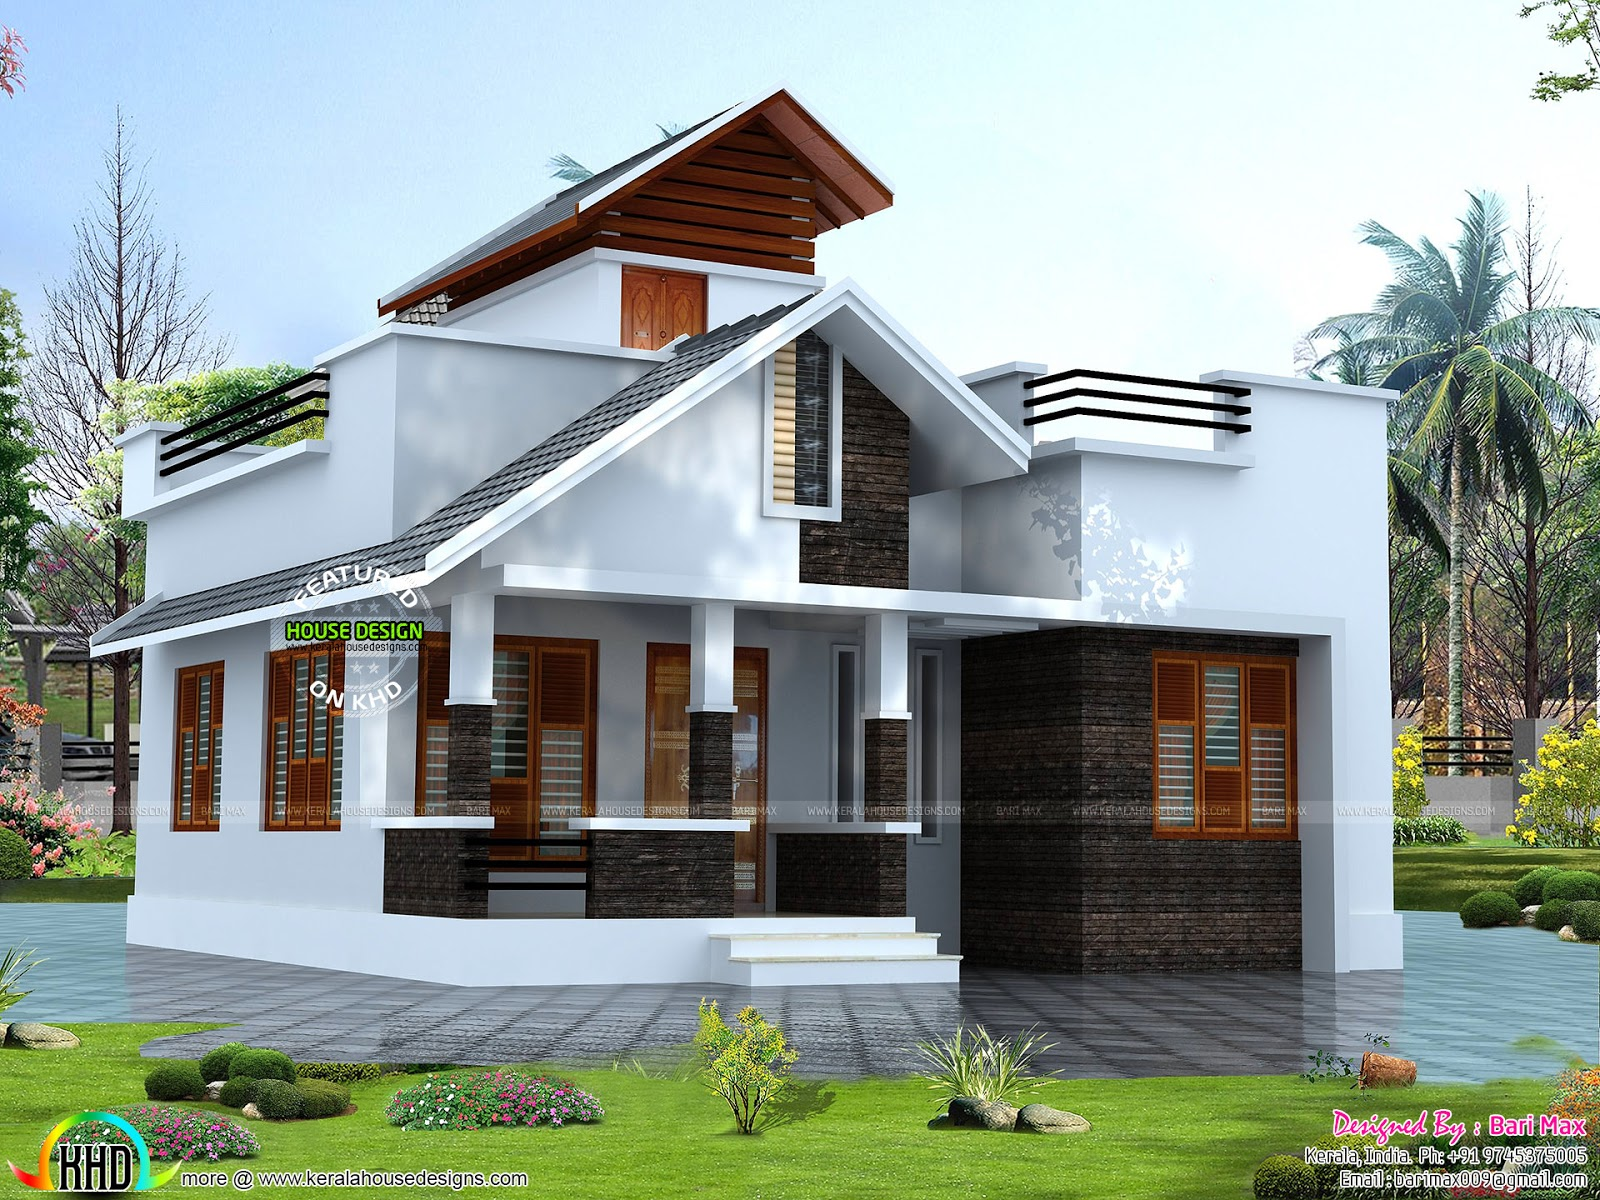 20 Lakh Home In Surat Rs 12 Lakh House Architecture Kerala Home Design And